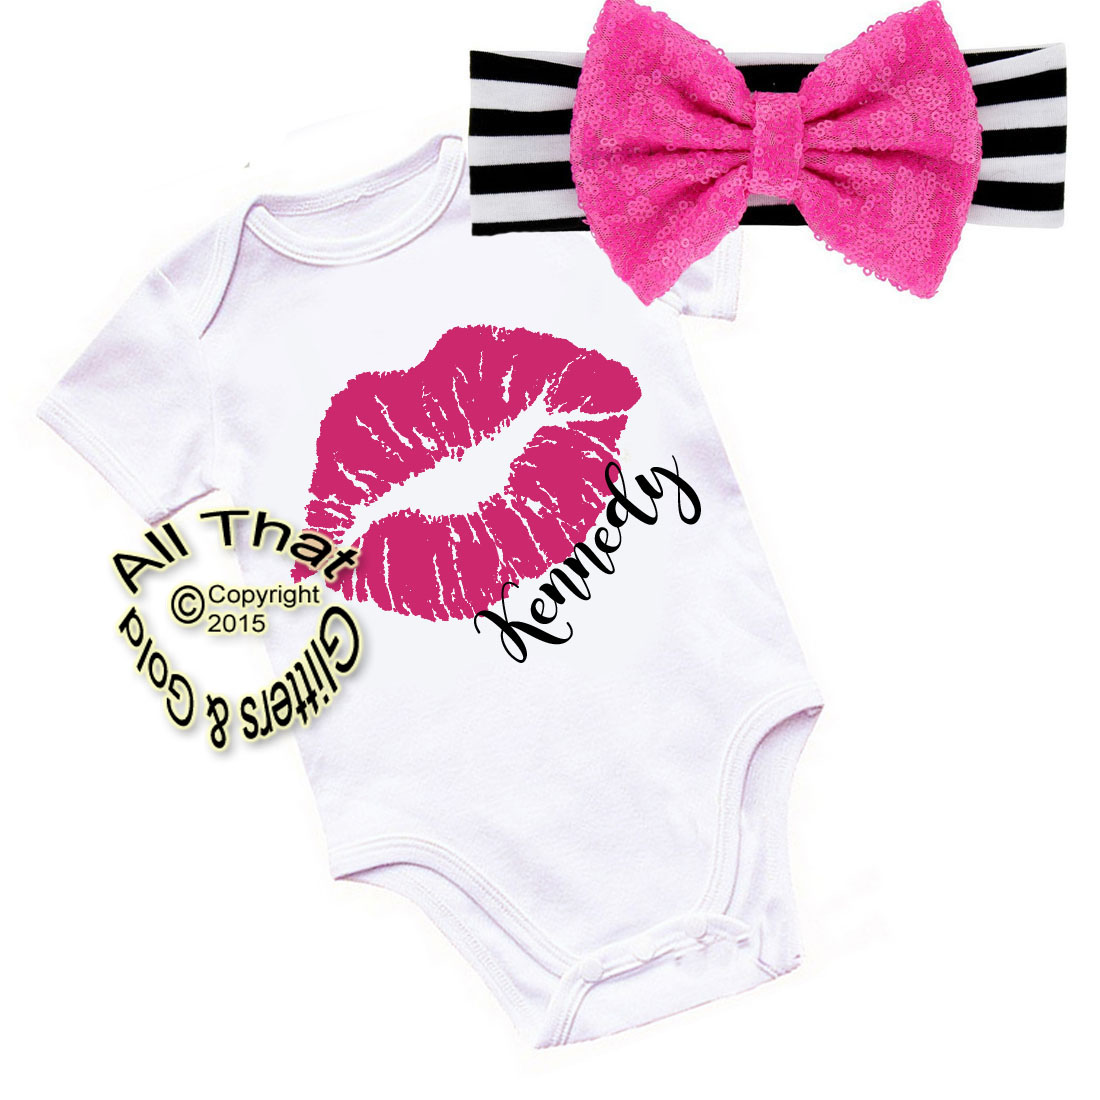 Design your own t-shirt hot pink - Personalized Black Hot Pink And White Lips Shirt Or Outfit For Girls